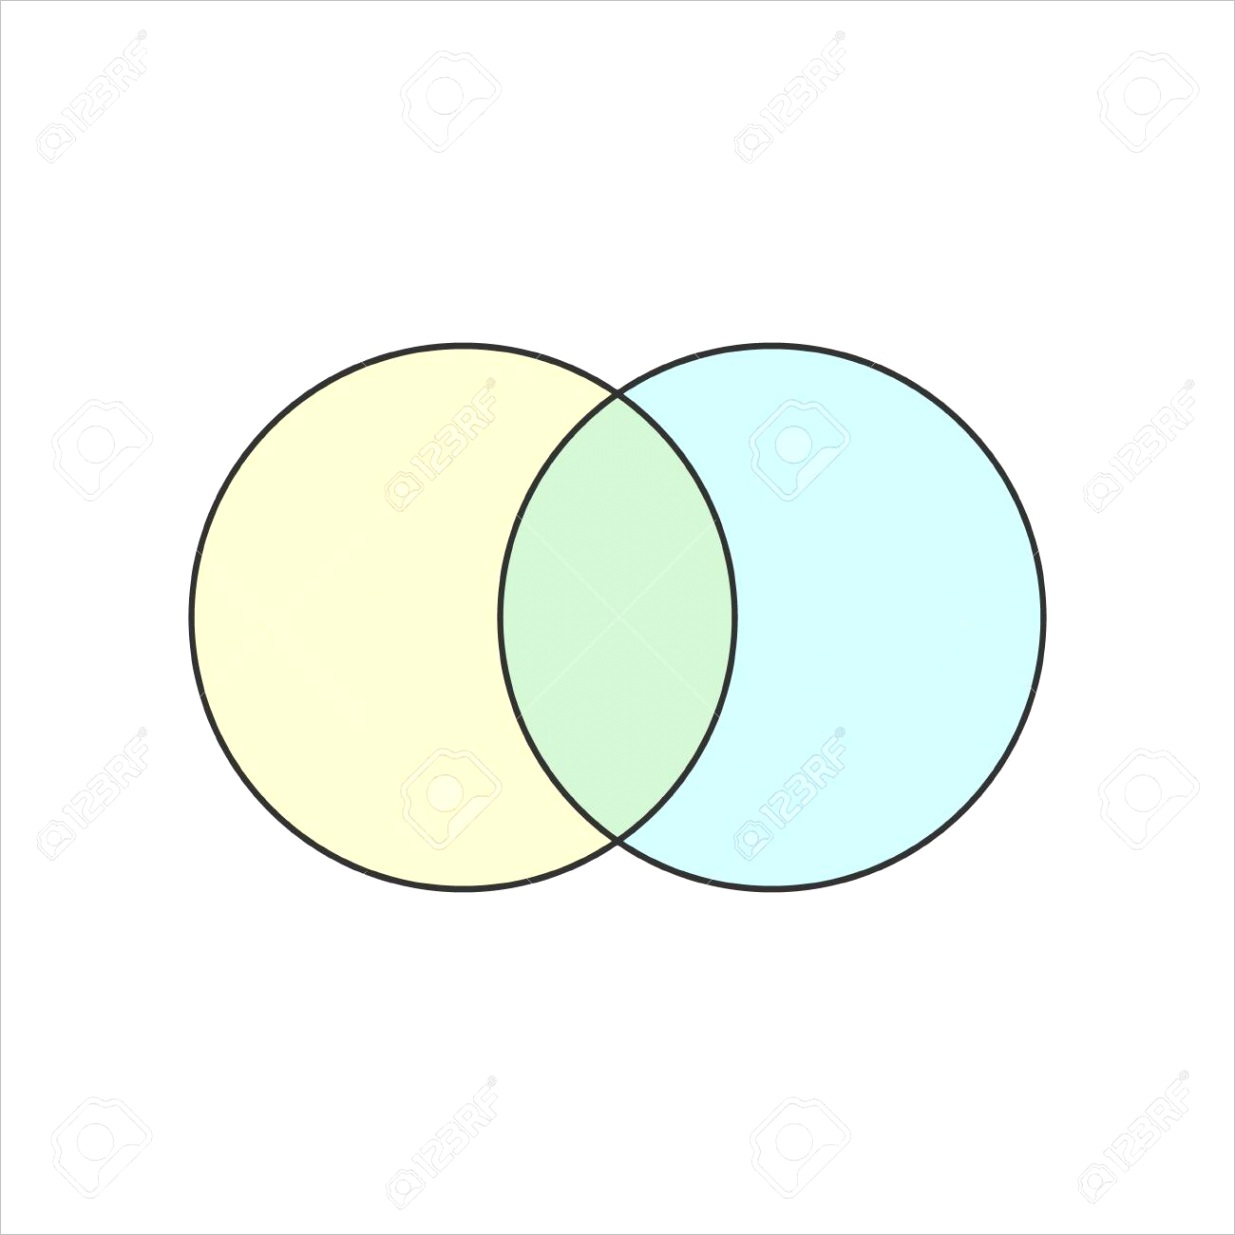 photo stock vector 2 circle blank venn diagram icon clipart image isolated on white background